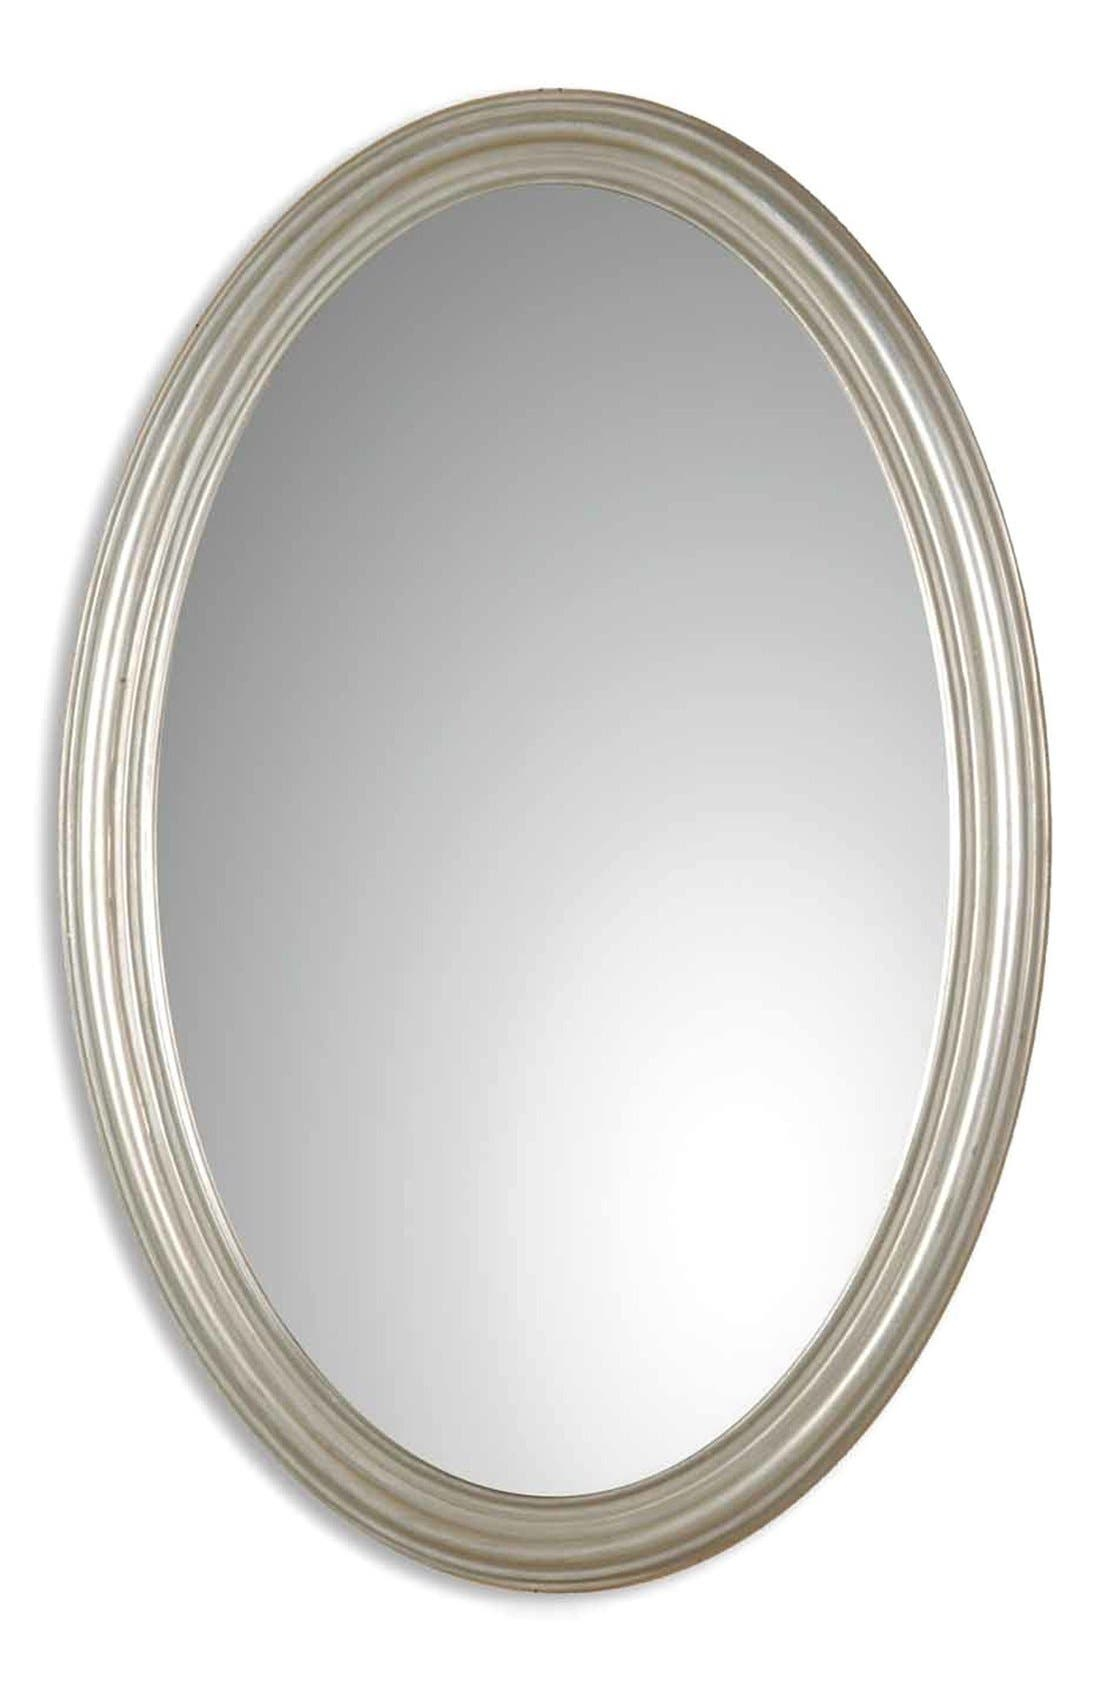 Alternate Image 1 Selected - Uttermost 'Franklin' Wall Mirror